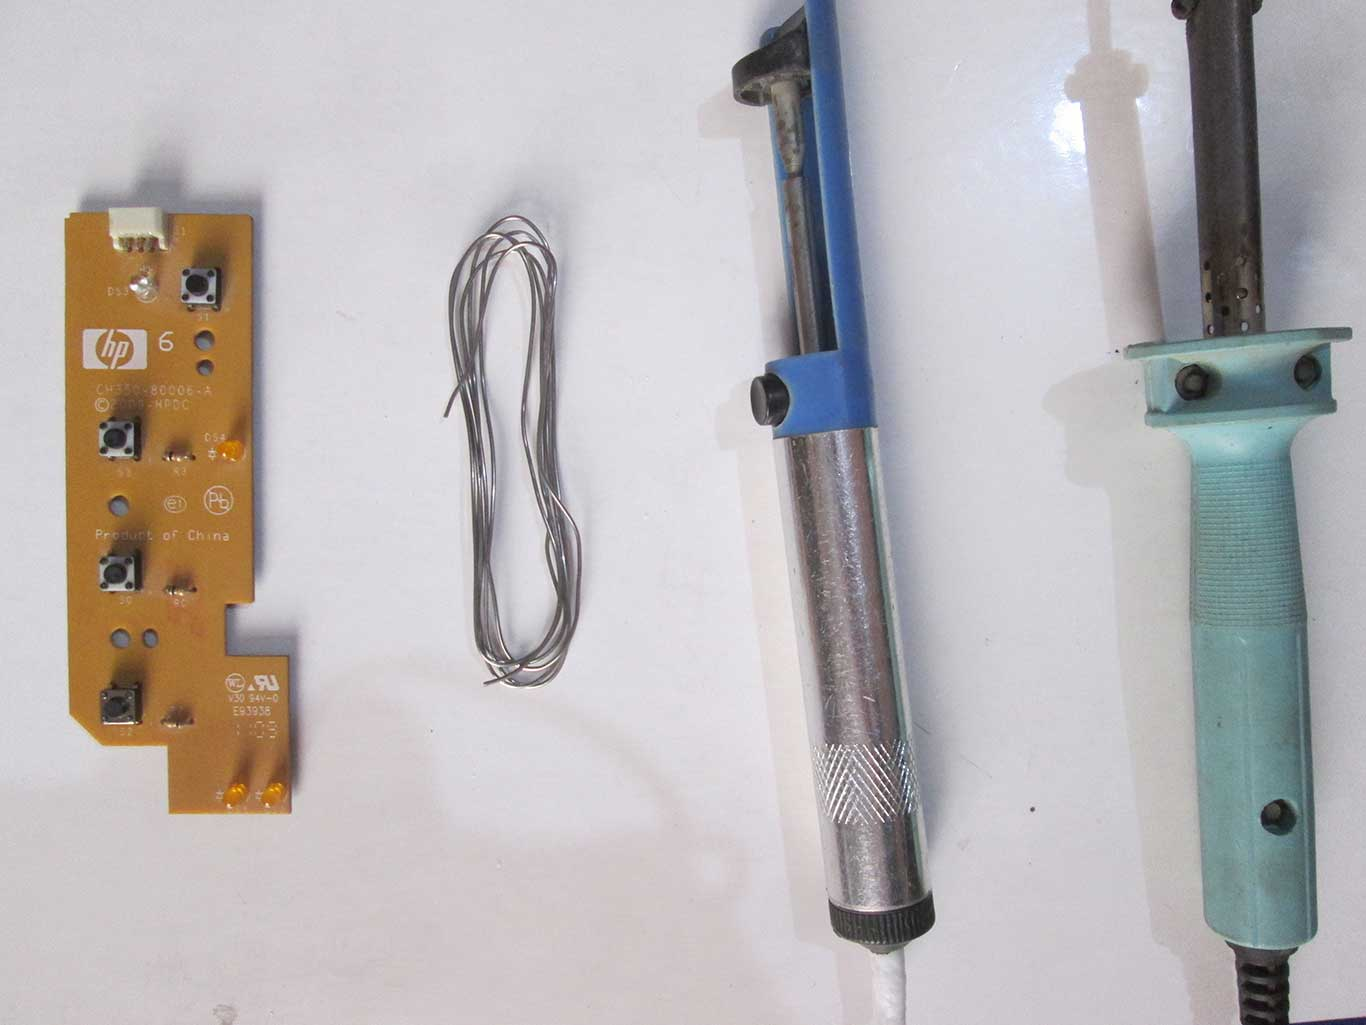 Tools used to solder the push button on the circuit board